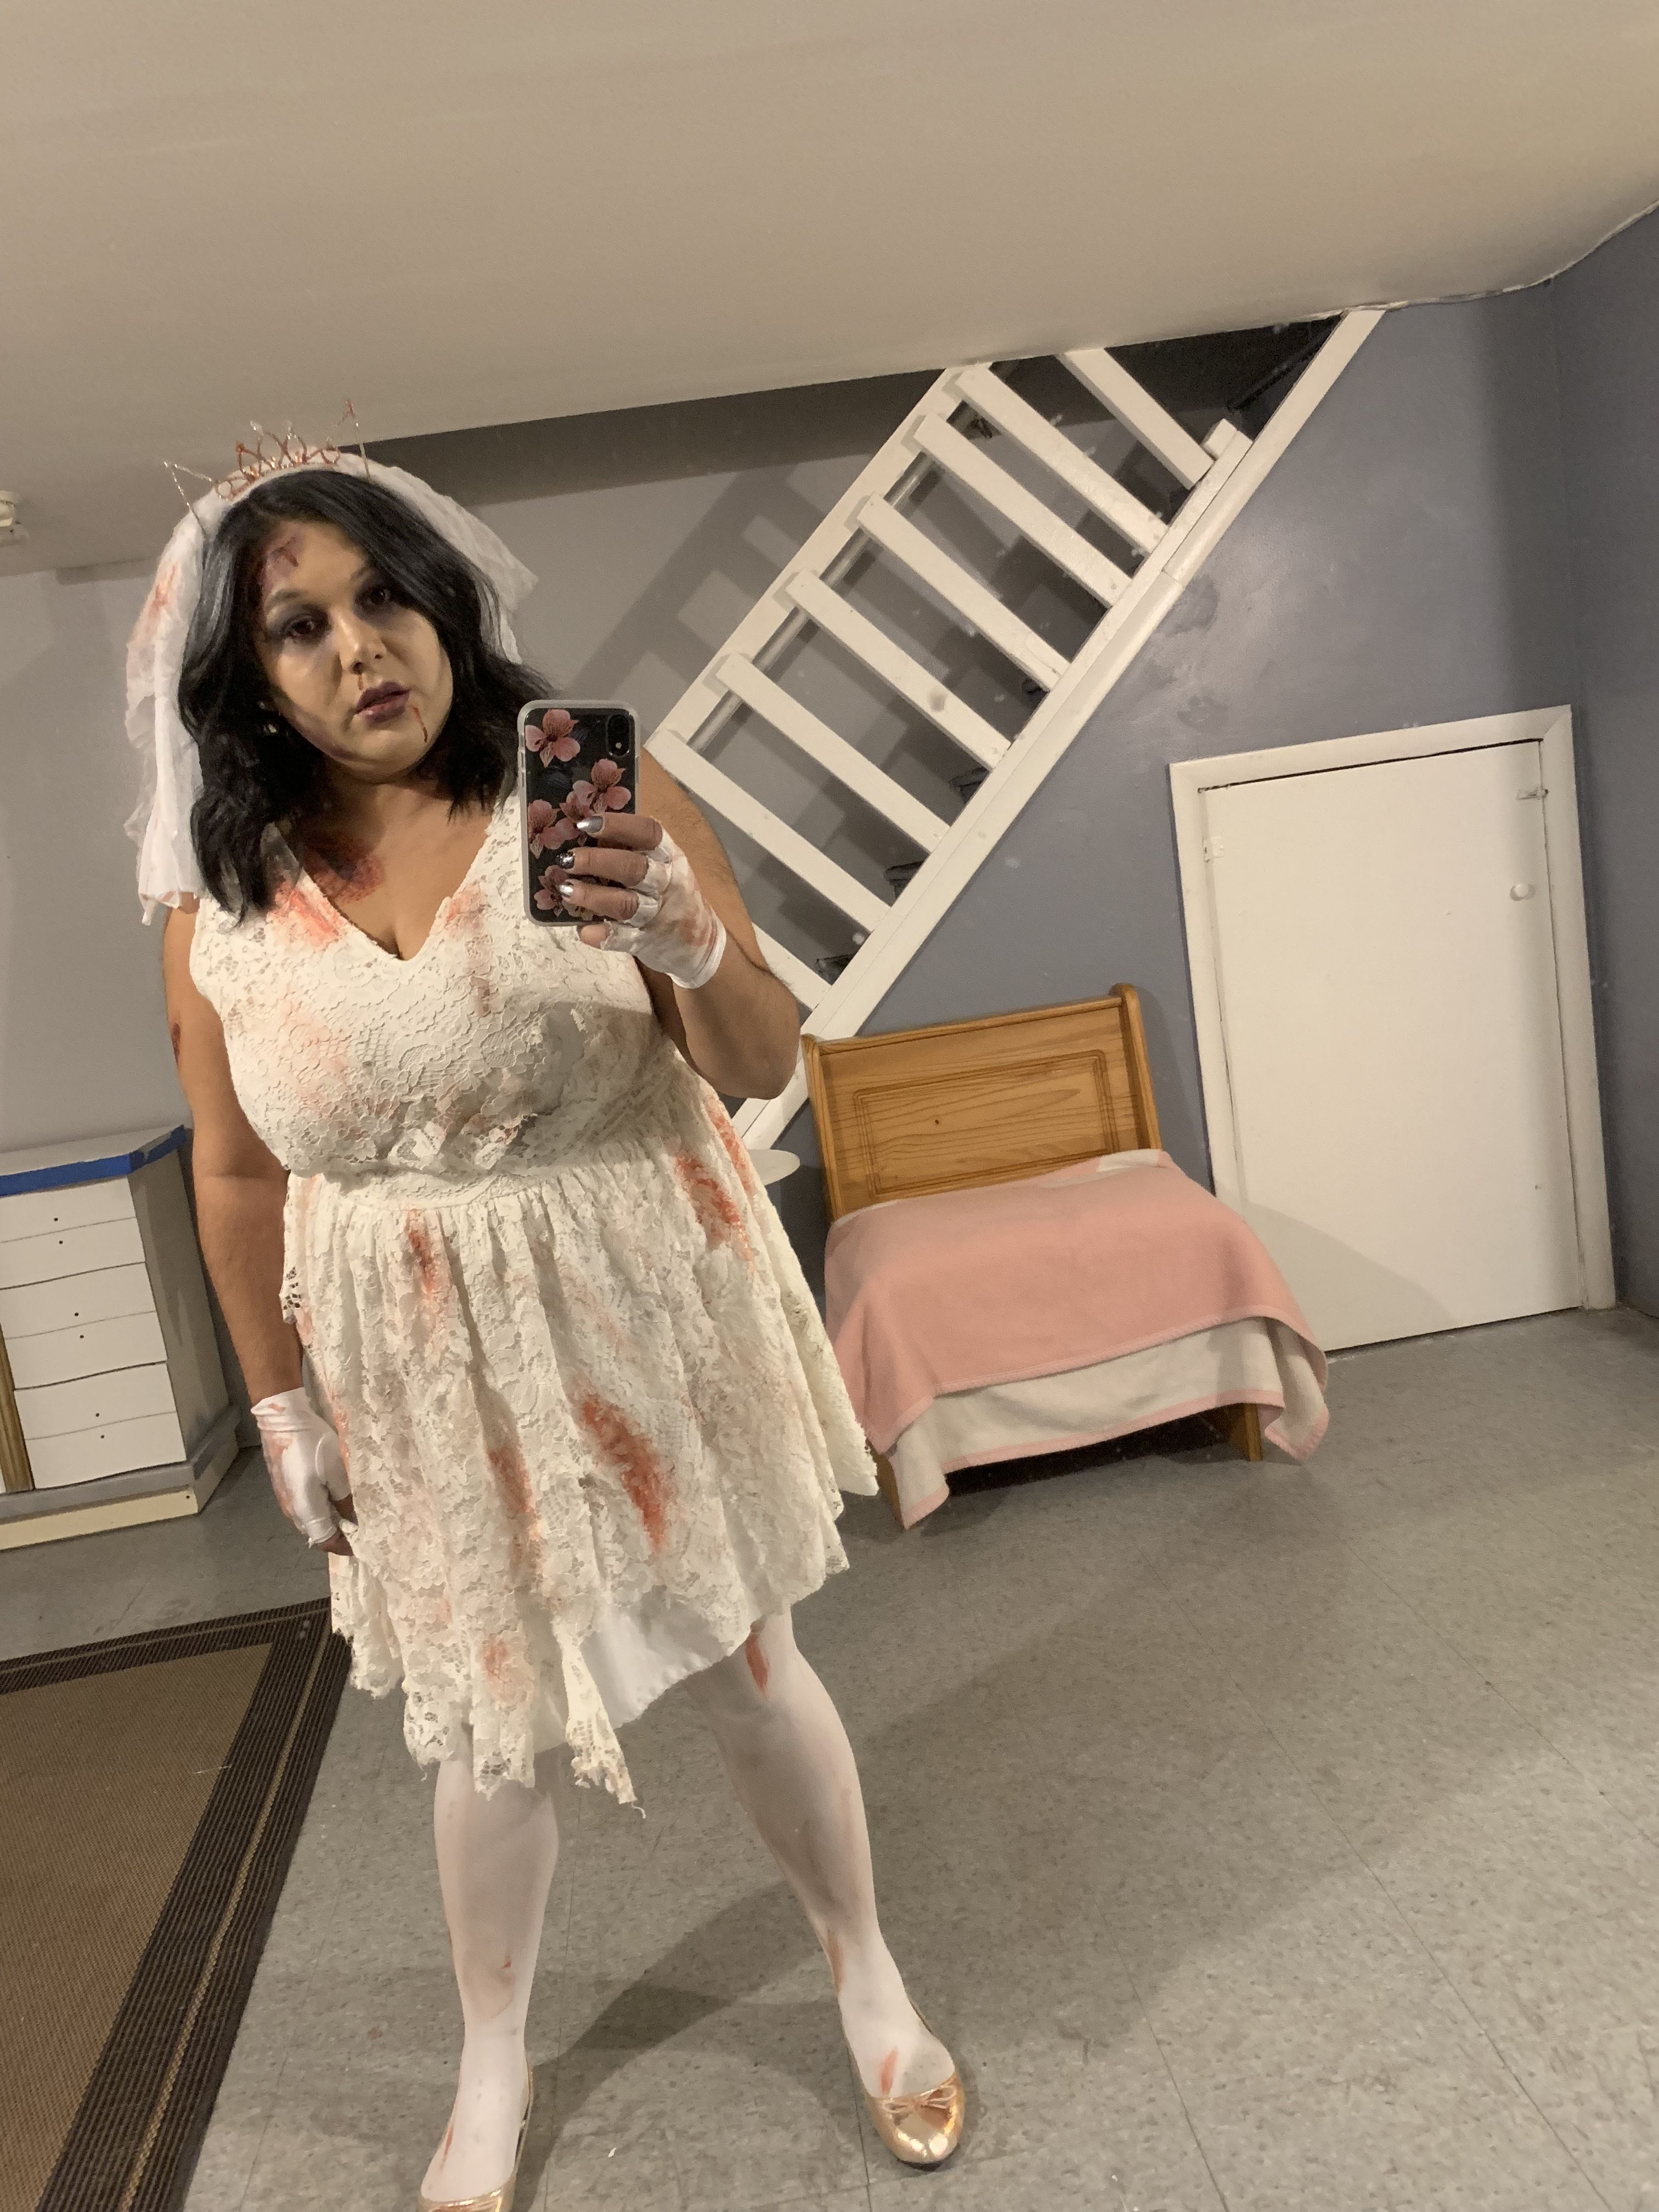 Pin by Melissa on My Halloween Parties 2014-2018